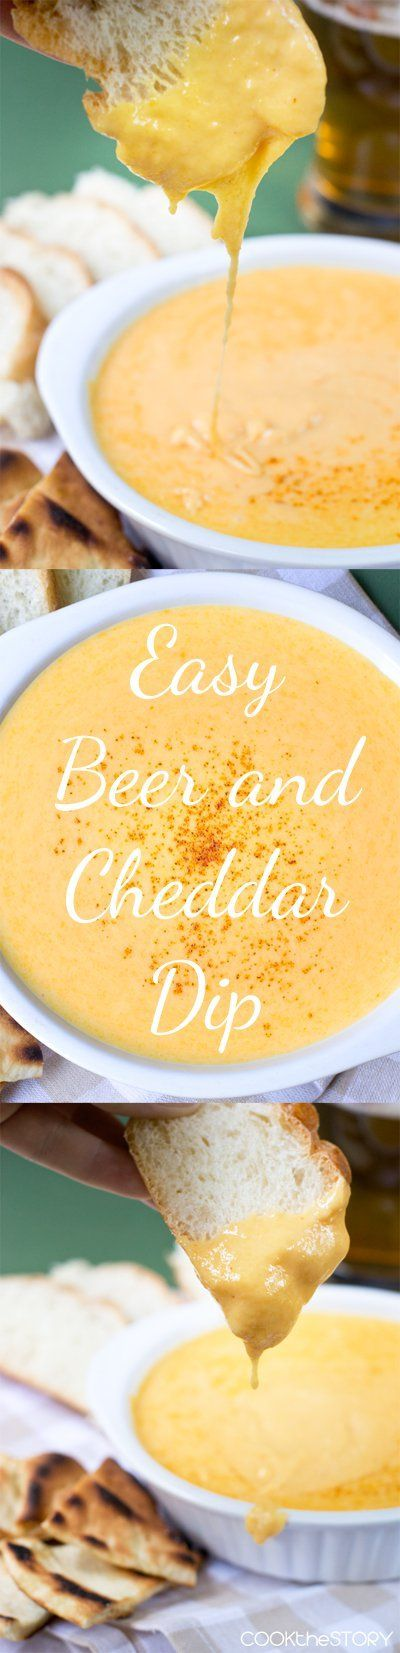 Super quick and easy to make! Beer and Cheese Dip. #partyfood #holiday